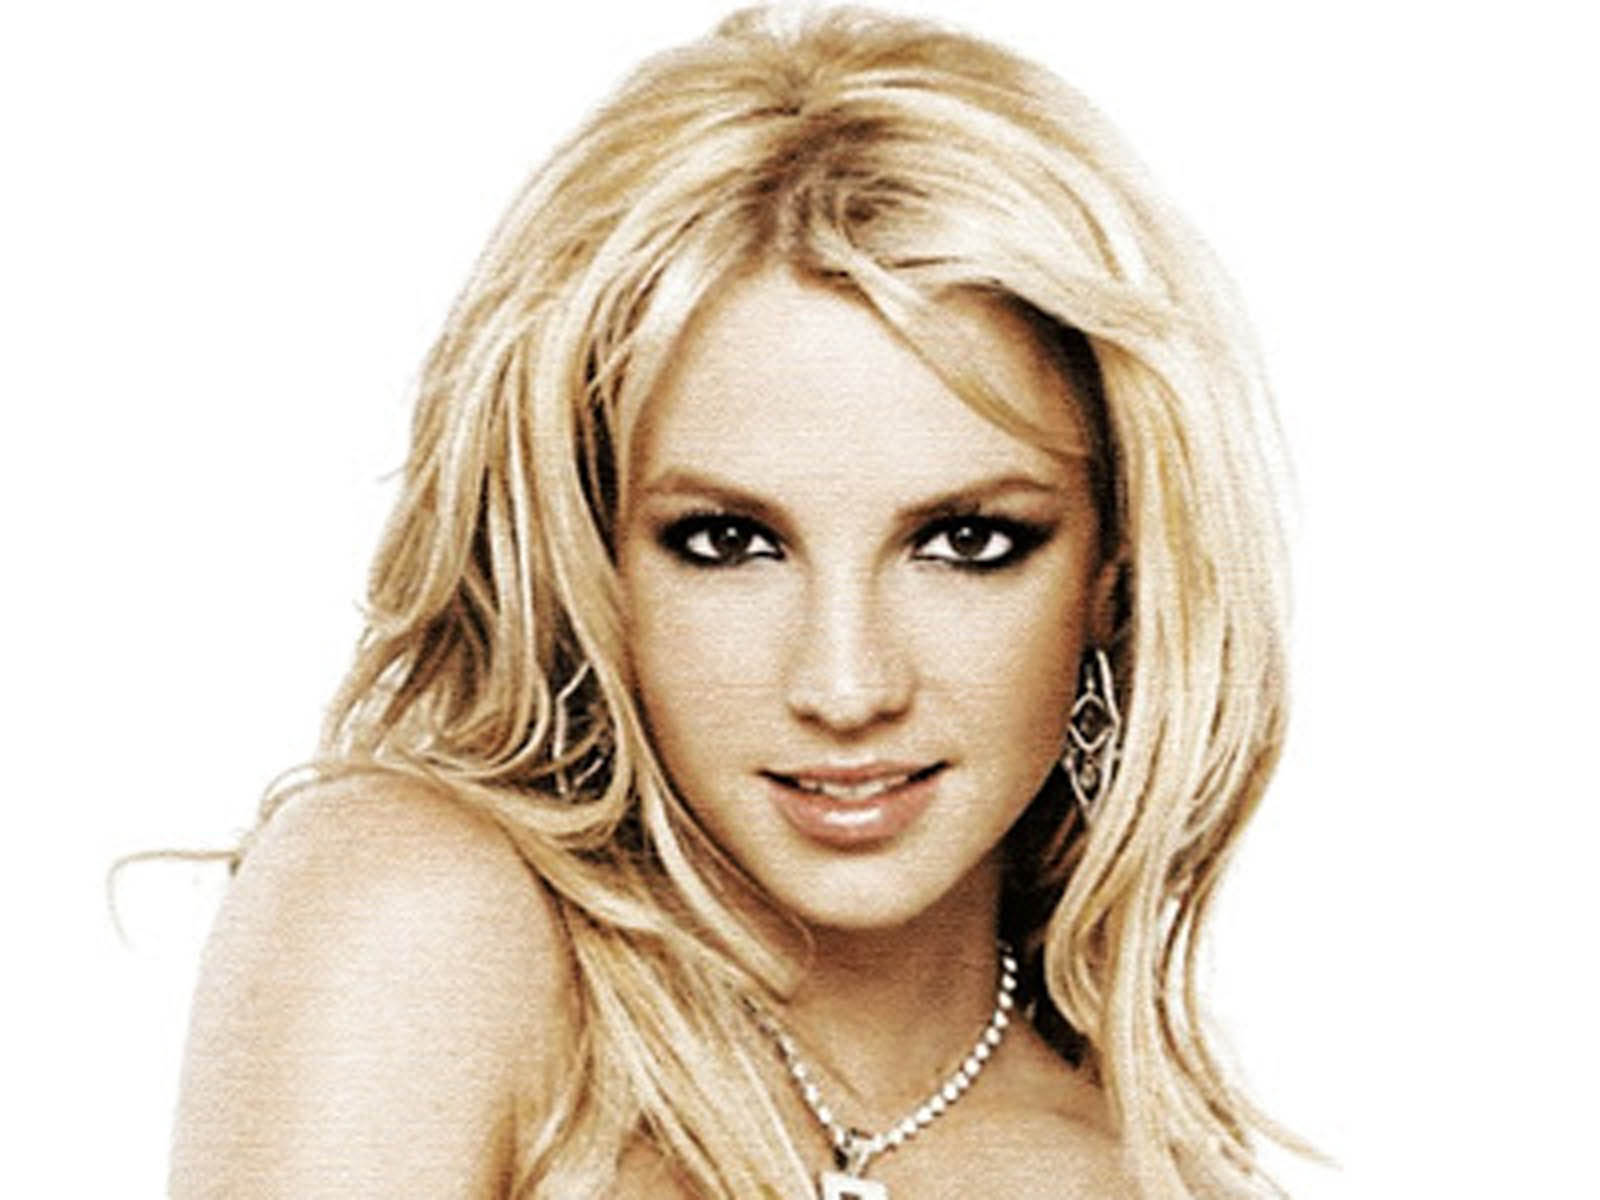 Tag britney spears wallpapers images backgrounds photos and